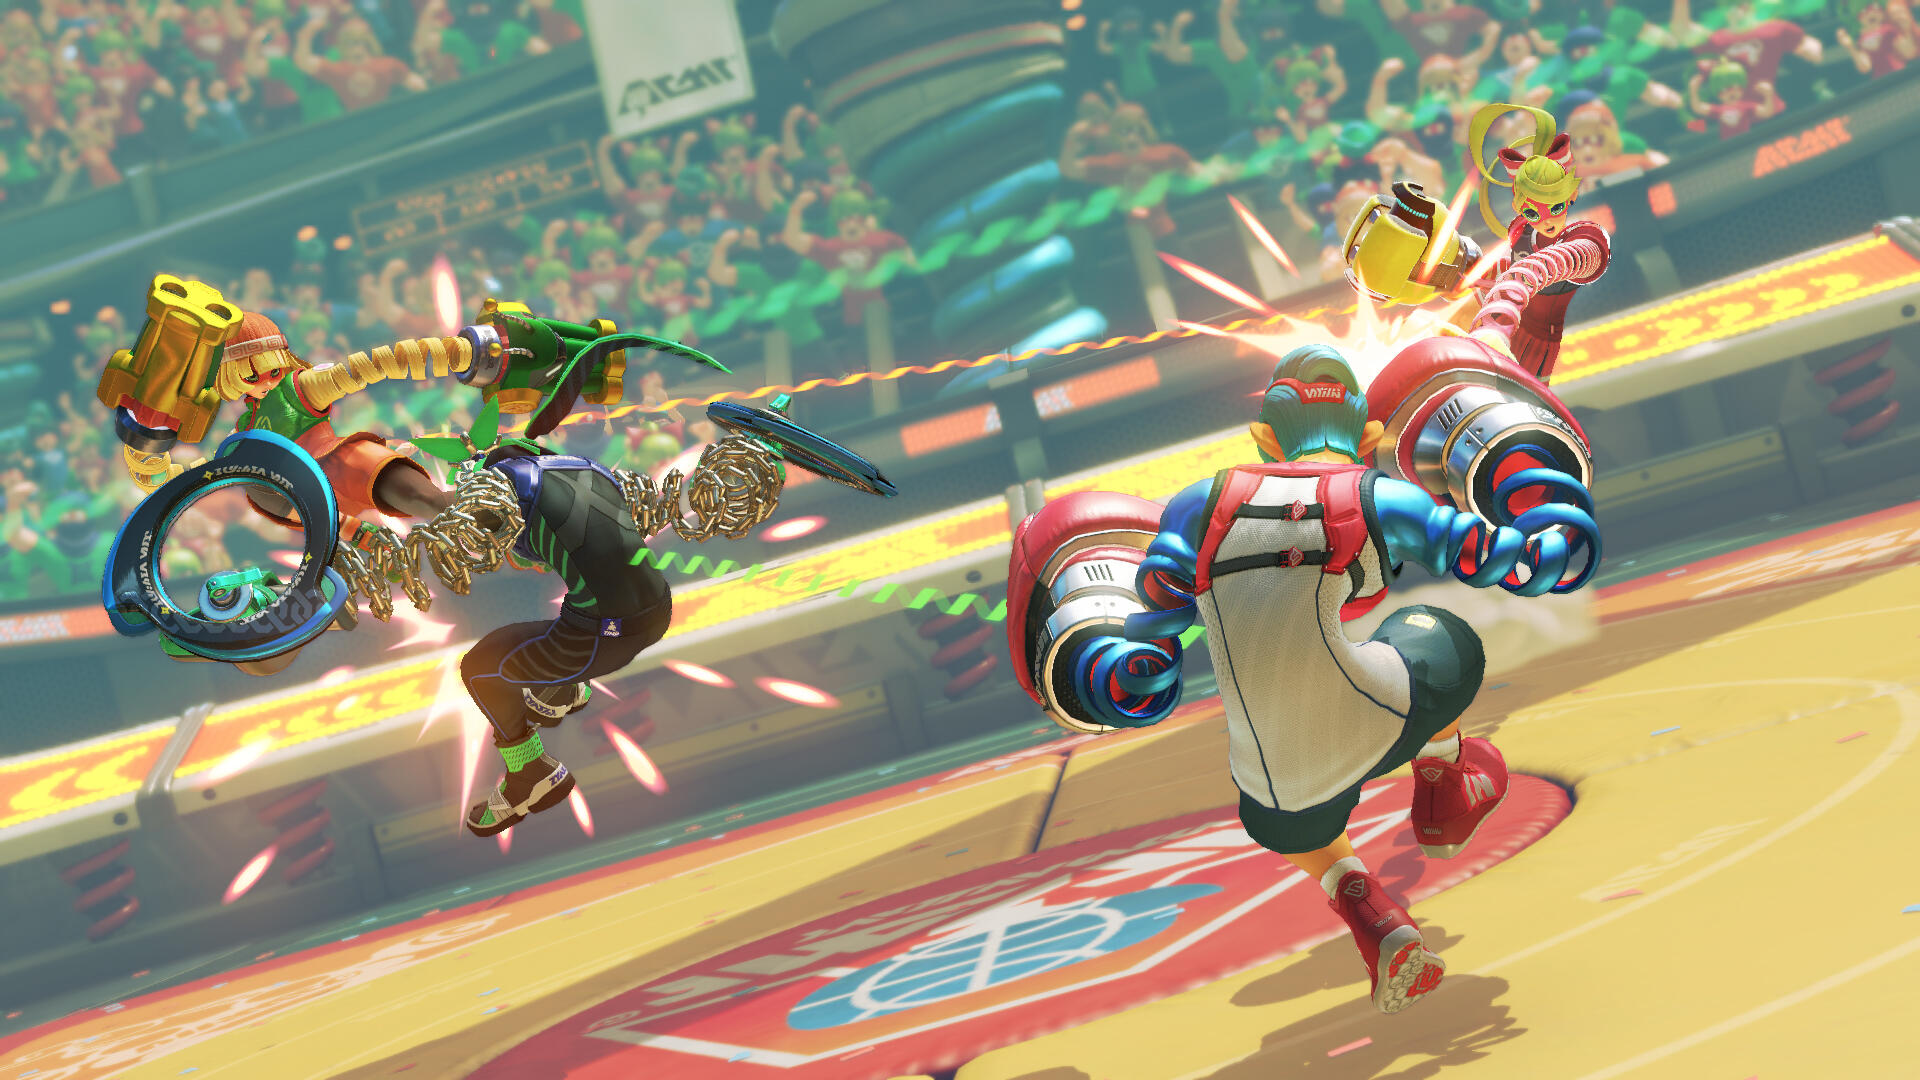 Arms - Reviews, Release Date, Price, New DLC Characters, Modes, Unlockables - Everything We Know